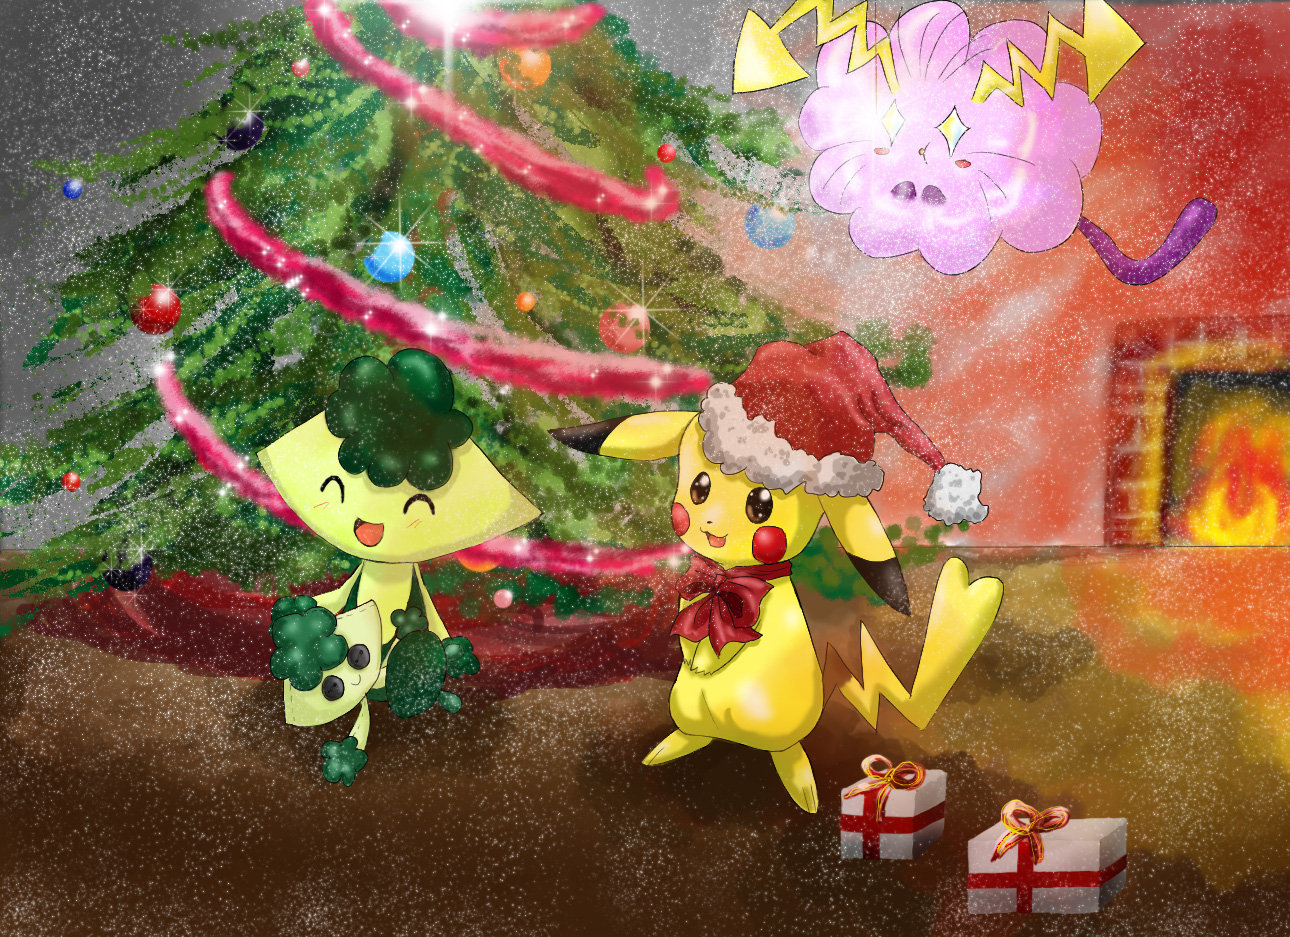 Pokémon-Zeichnung: Merry Christmas Everyone!